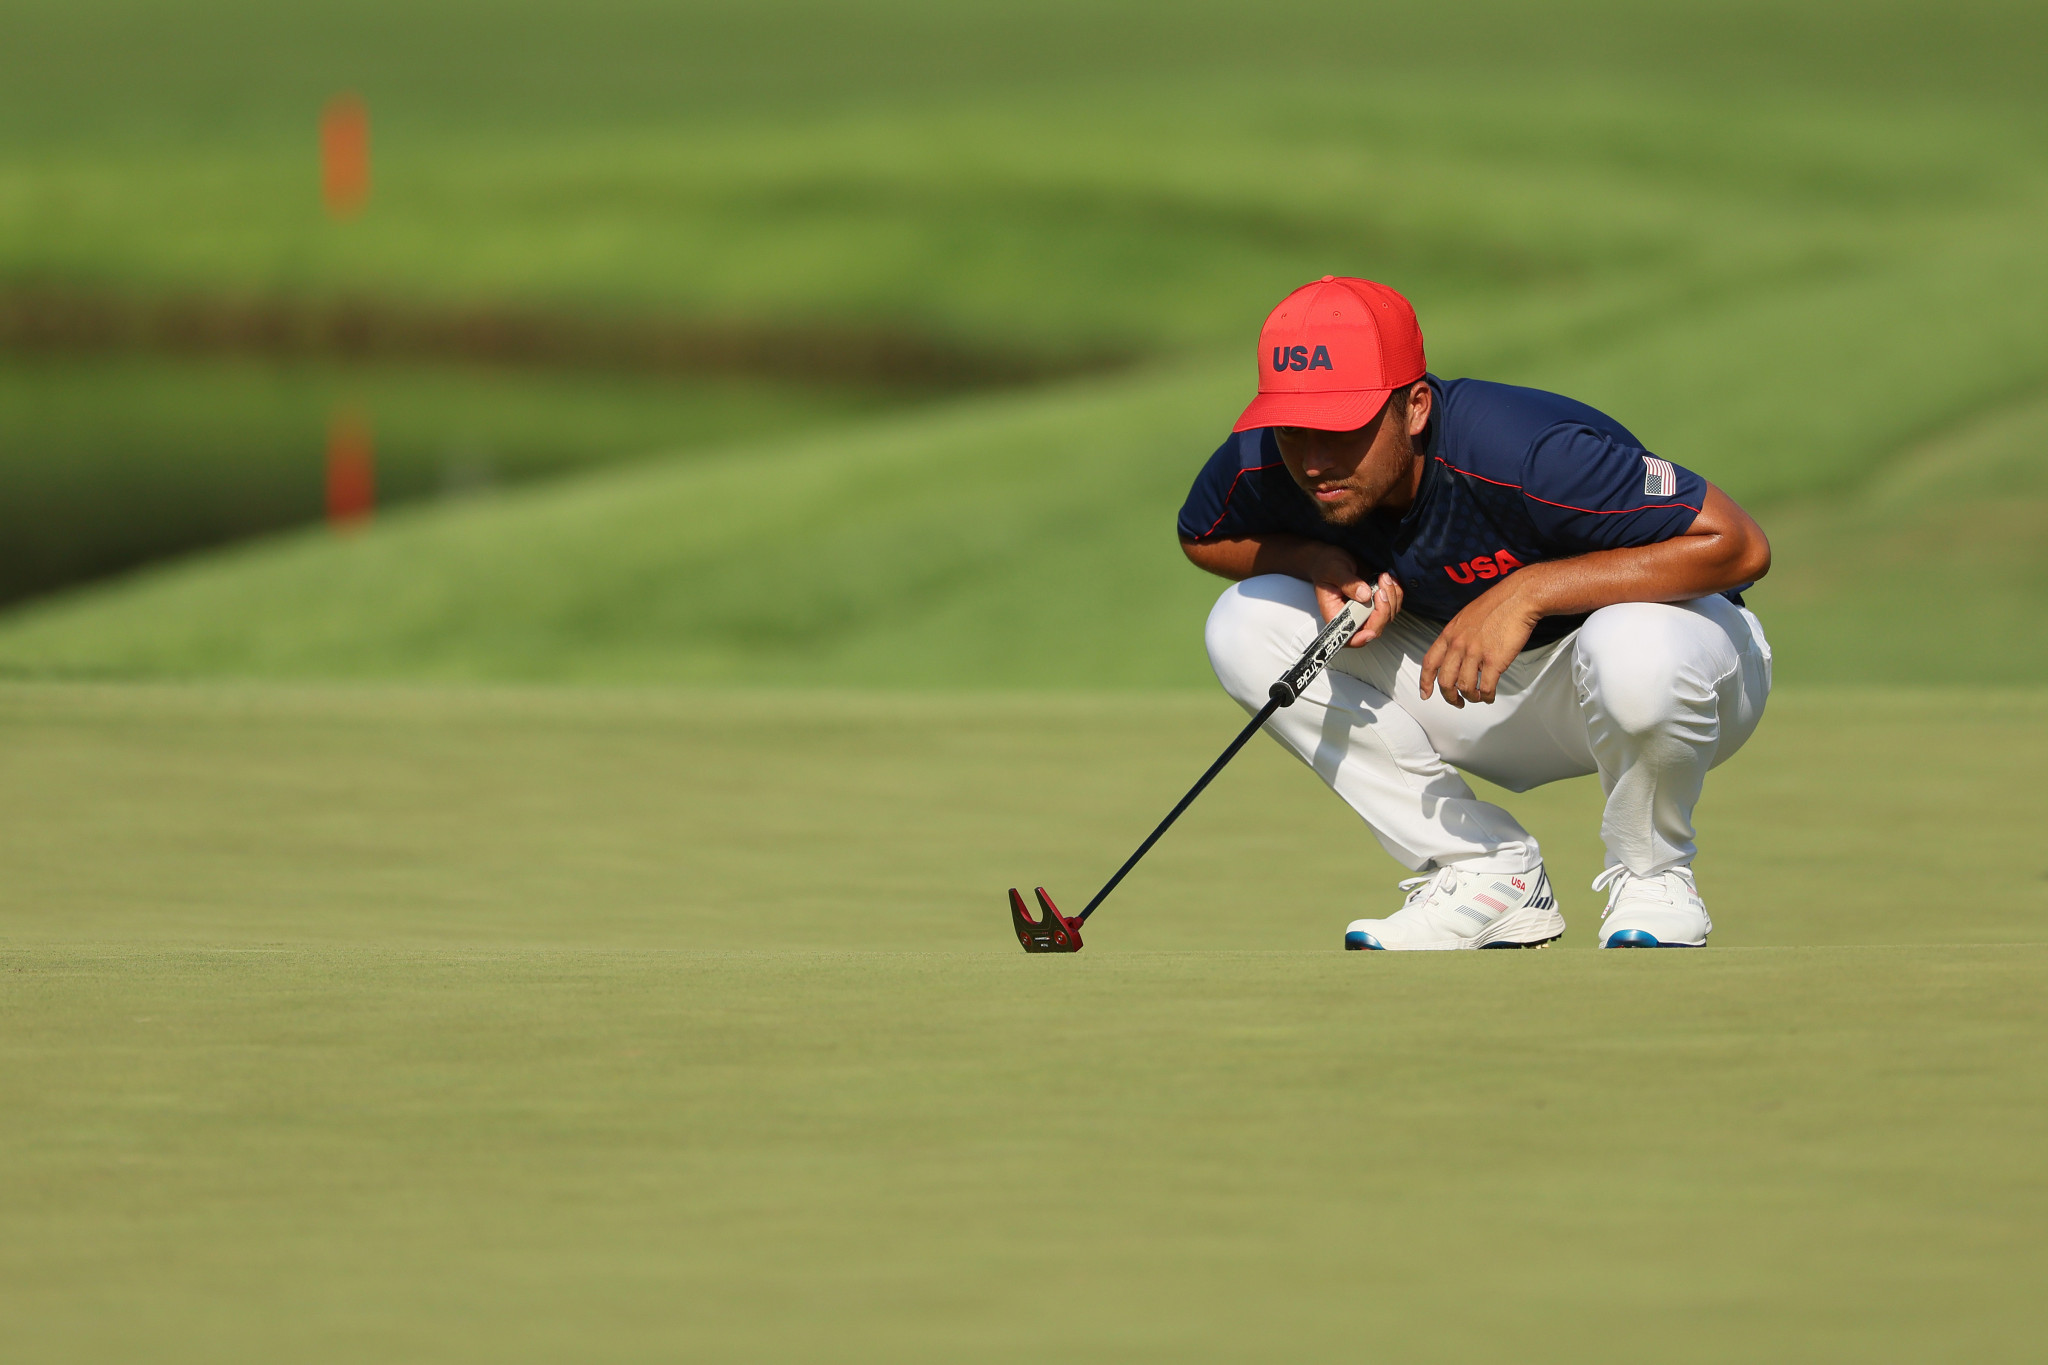 Xander Schauffele of the United States won the men's golf gold medal - but a seven-way playoff was needed to decide third place ©Getty Images